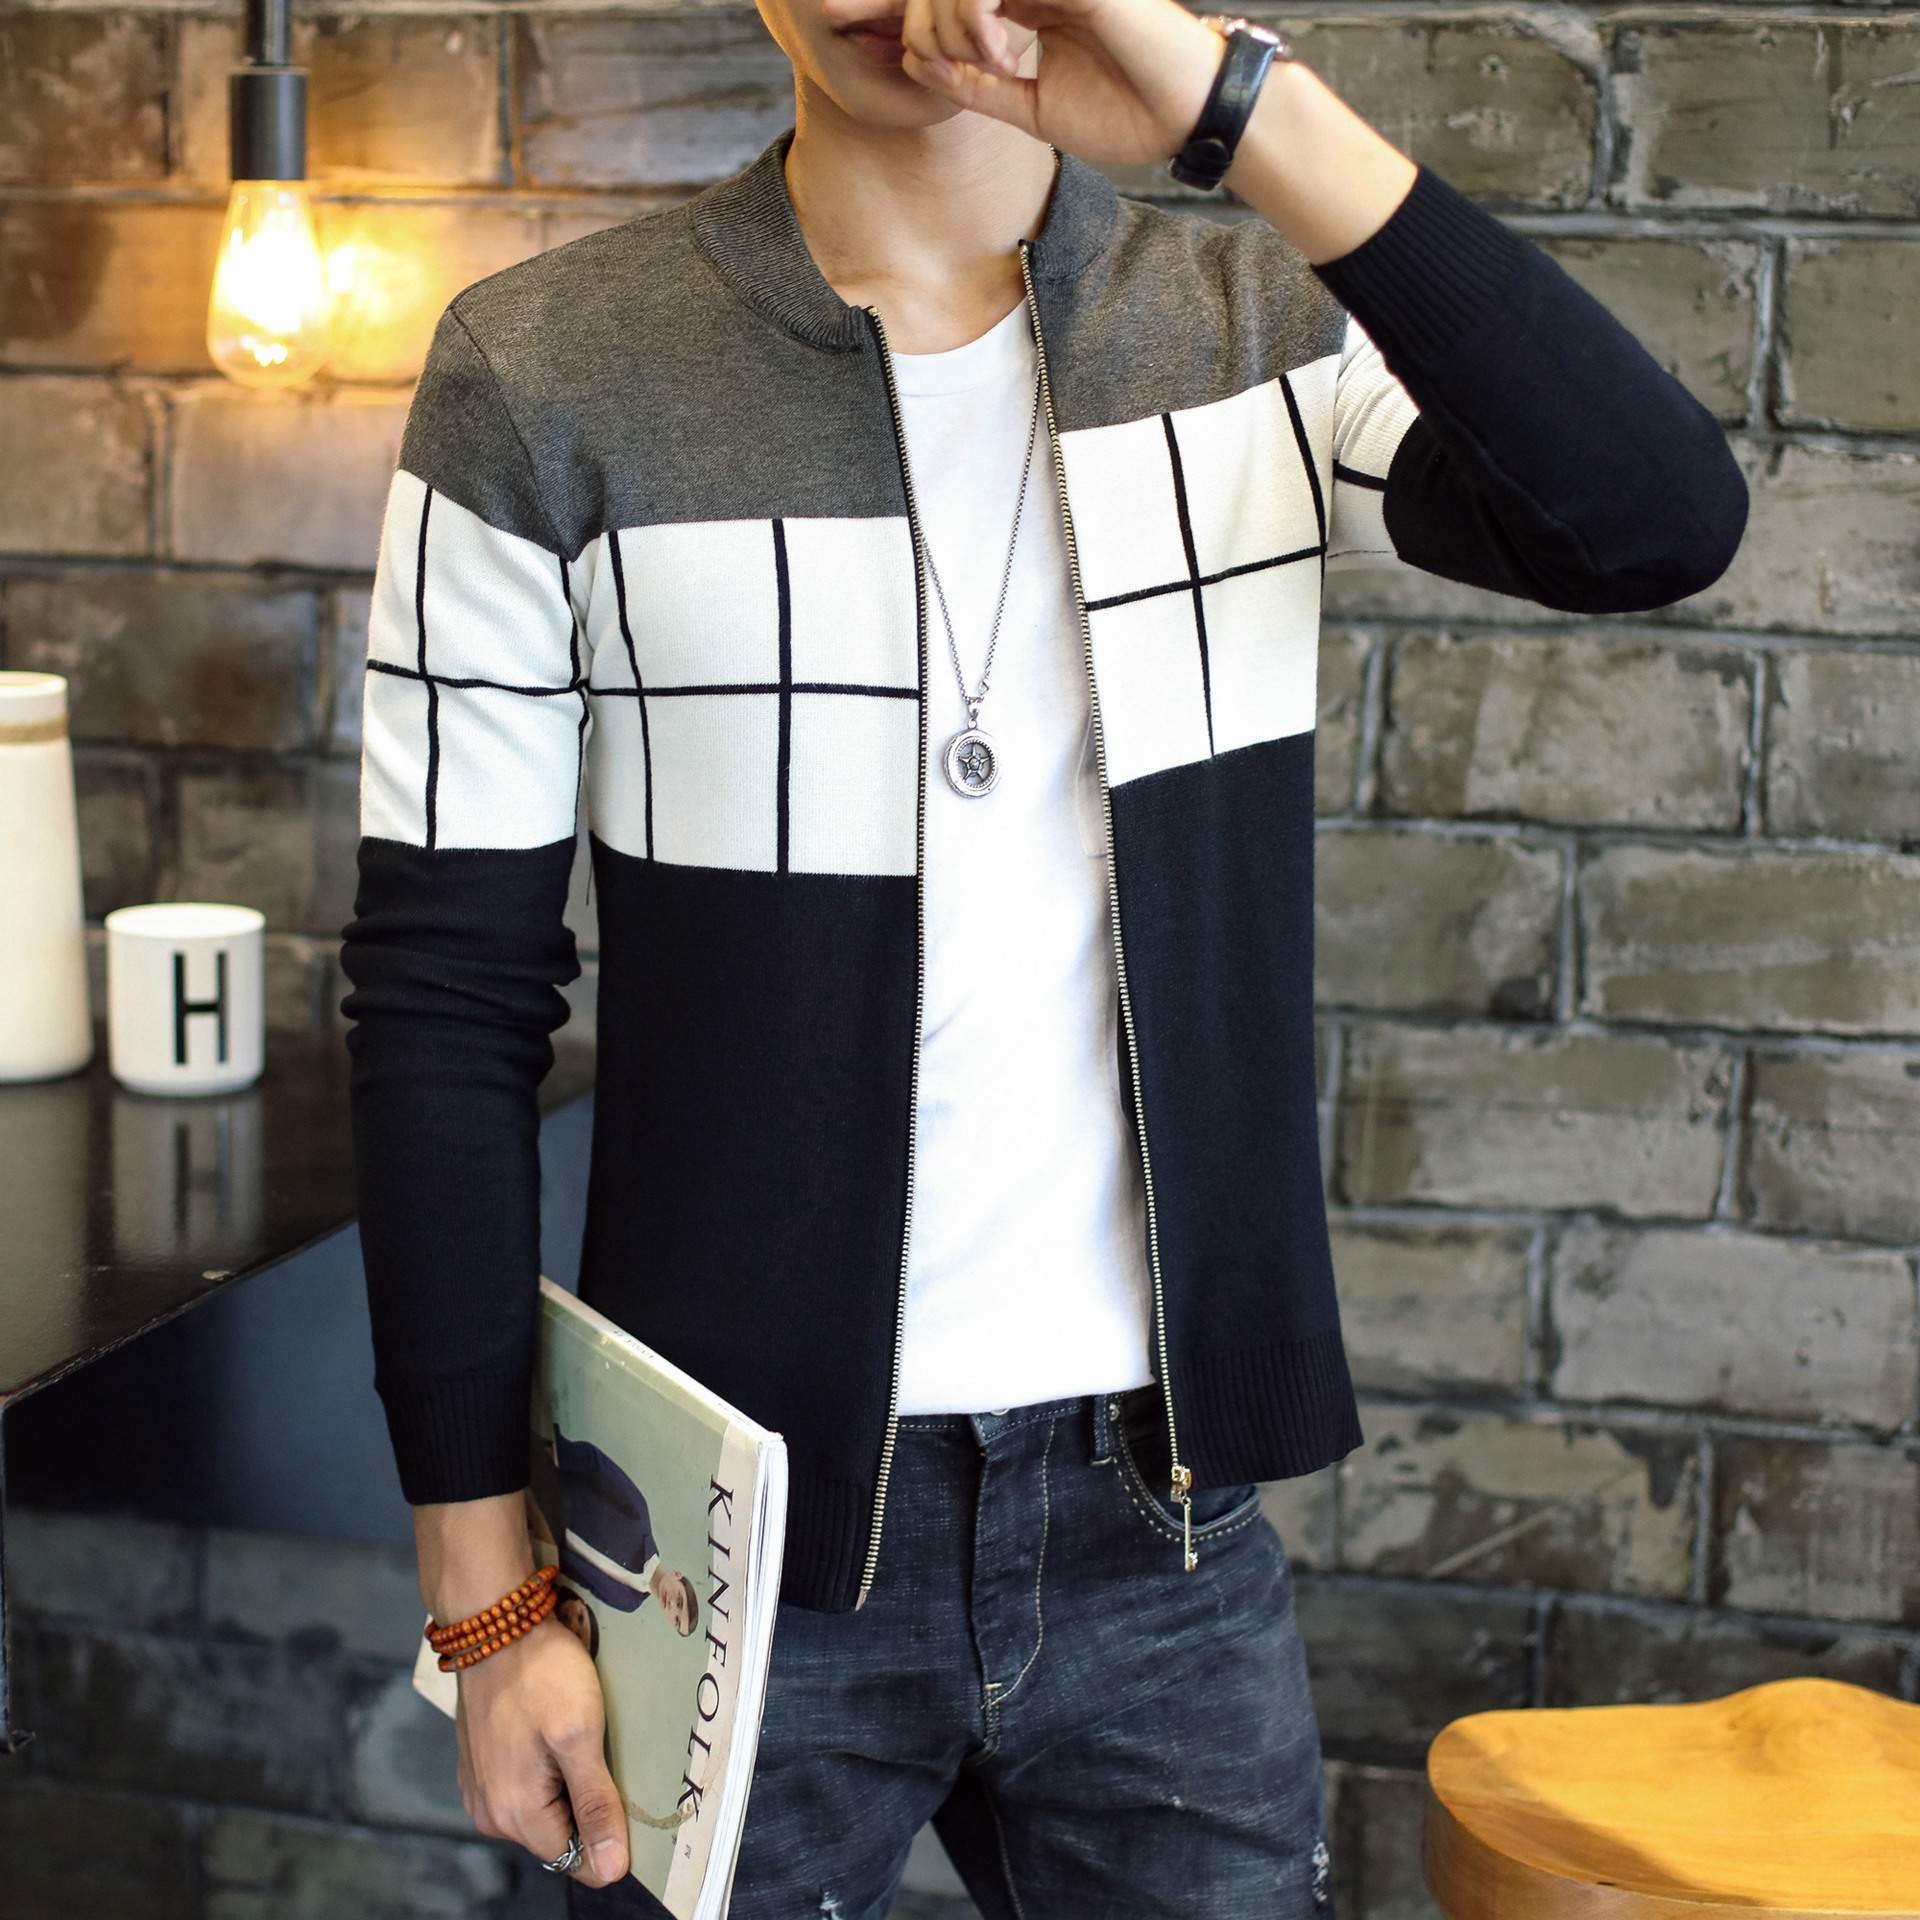 Free Shipping Knitted Cardigan Men Brand Clothing 2017 Cheap Wholesale Autumn Winter Hot Sale Fashion Warm Christmas Sweaters